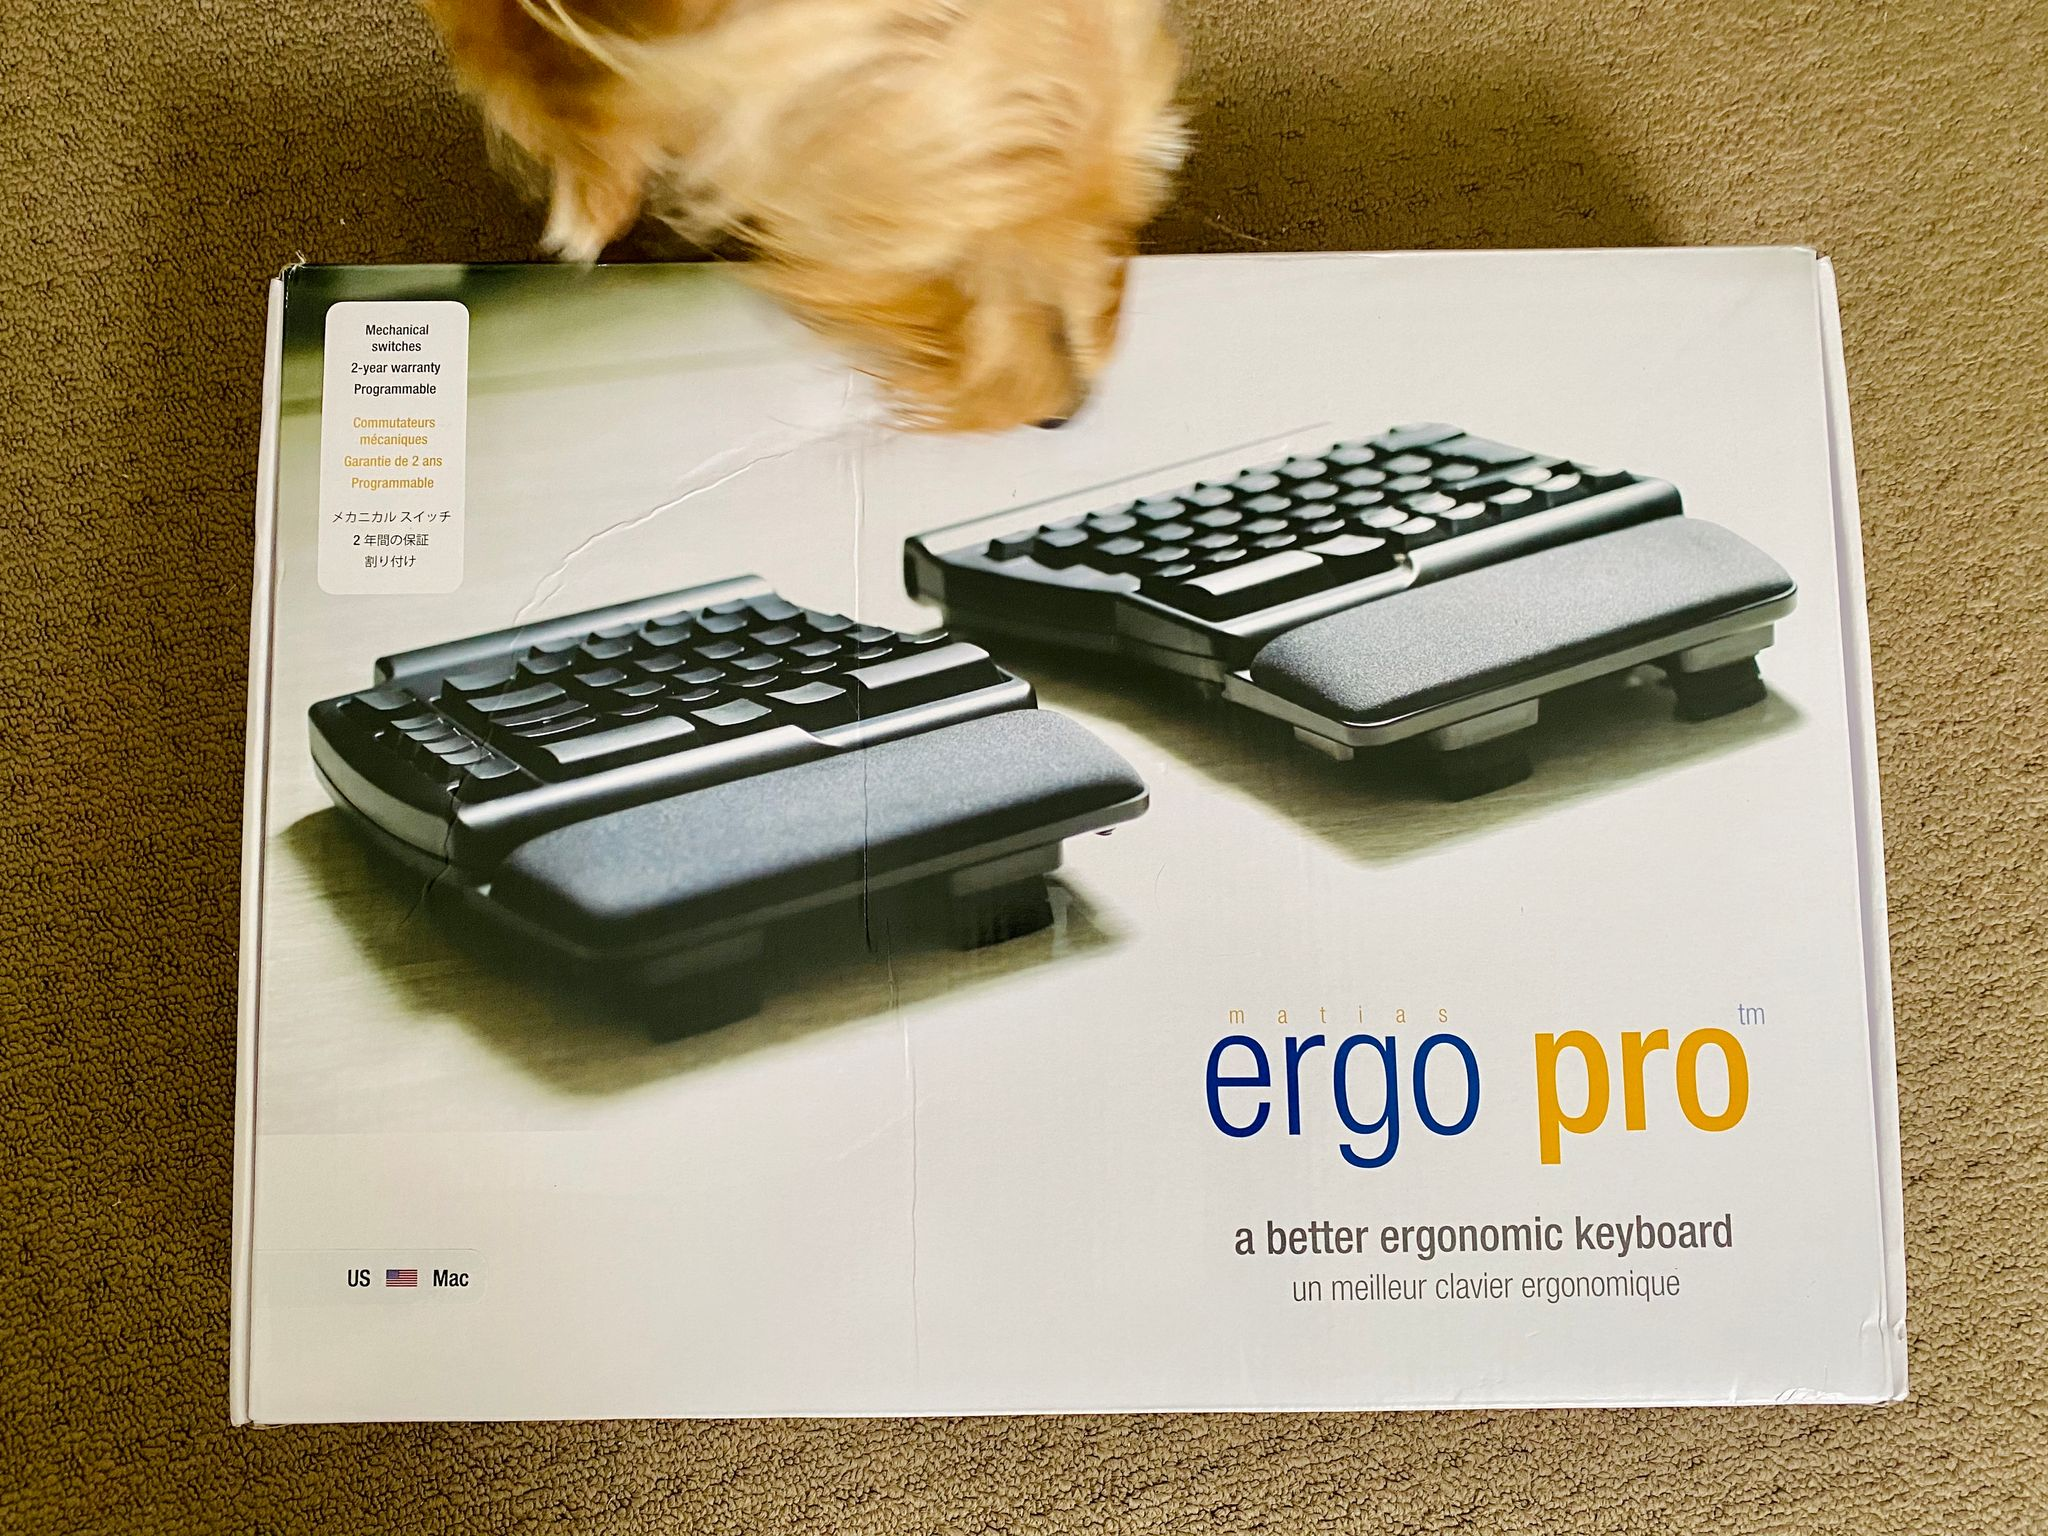 A photo of the box of a Matias Ergo Pro mechanical ergonomic keyboard, with the face of a small scruffy blonde dog giving it a sniff.